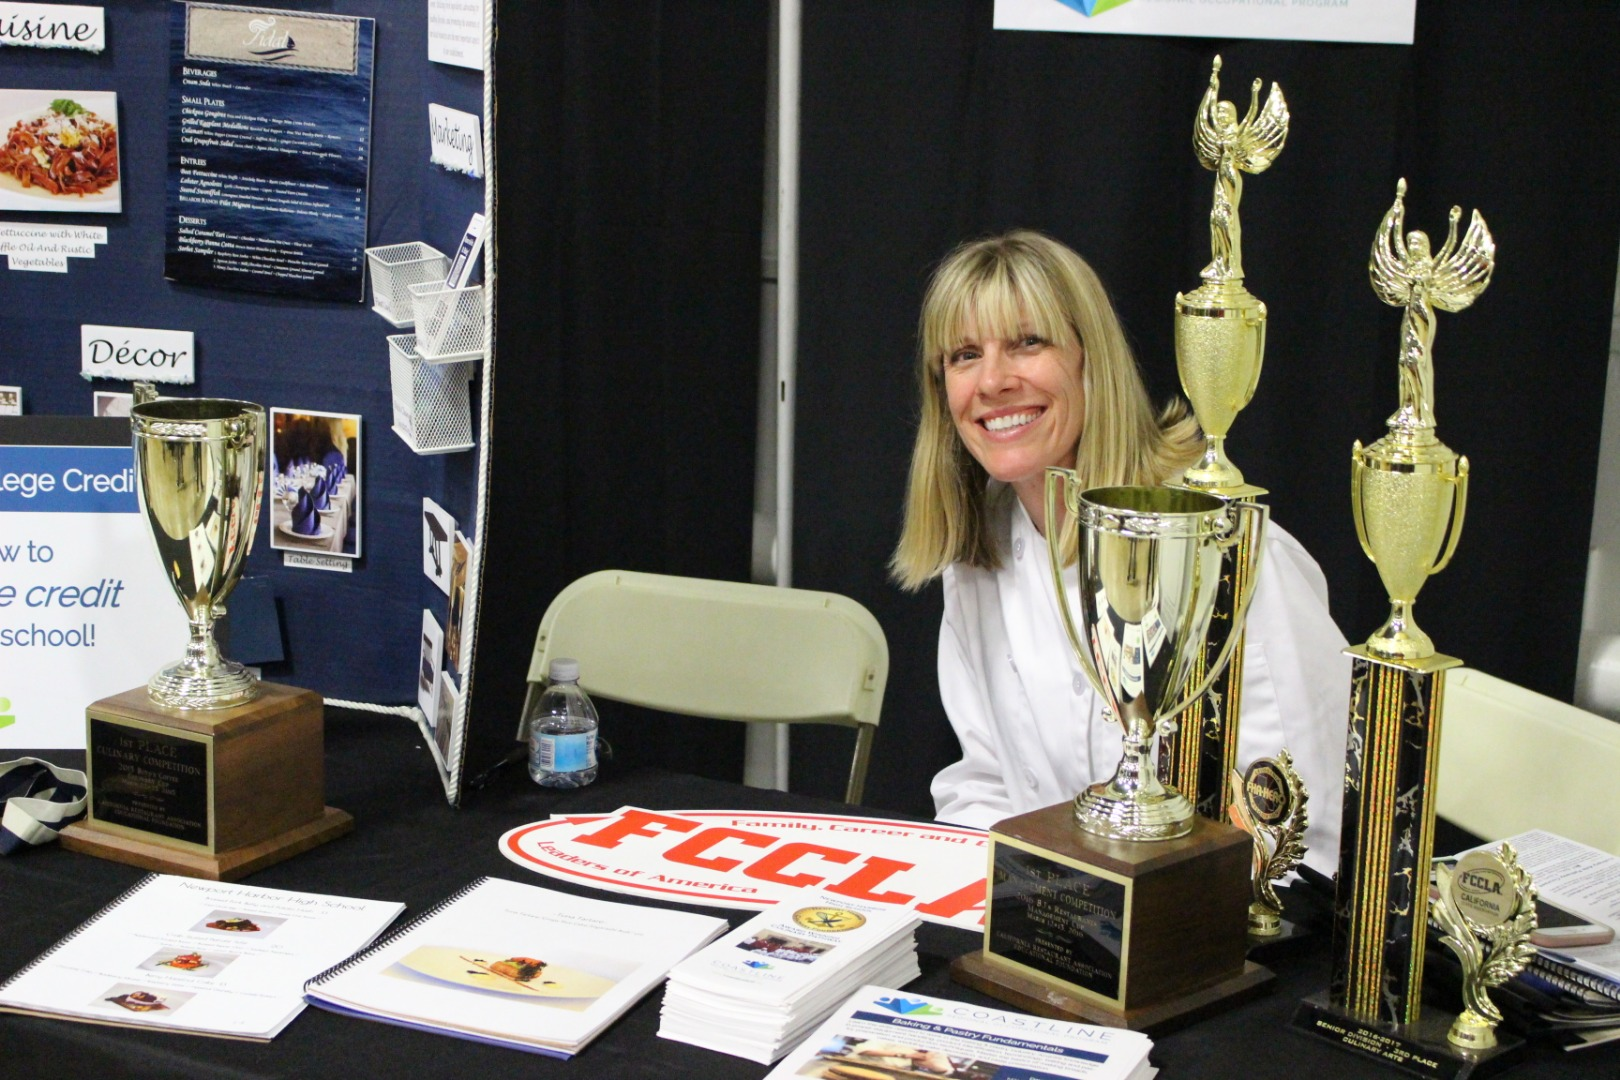 FCCLA booth with teacher